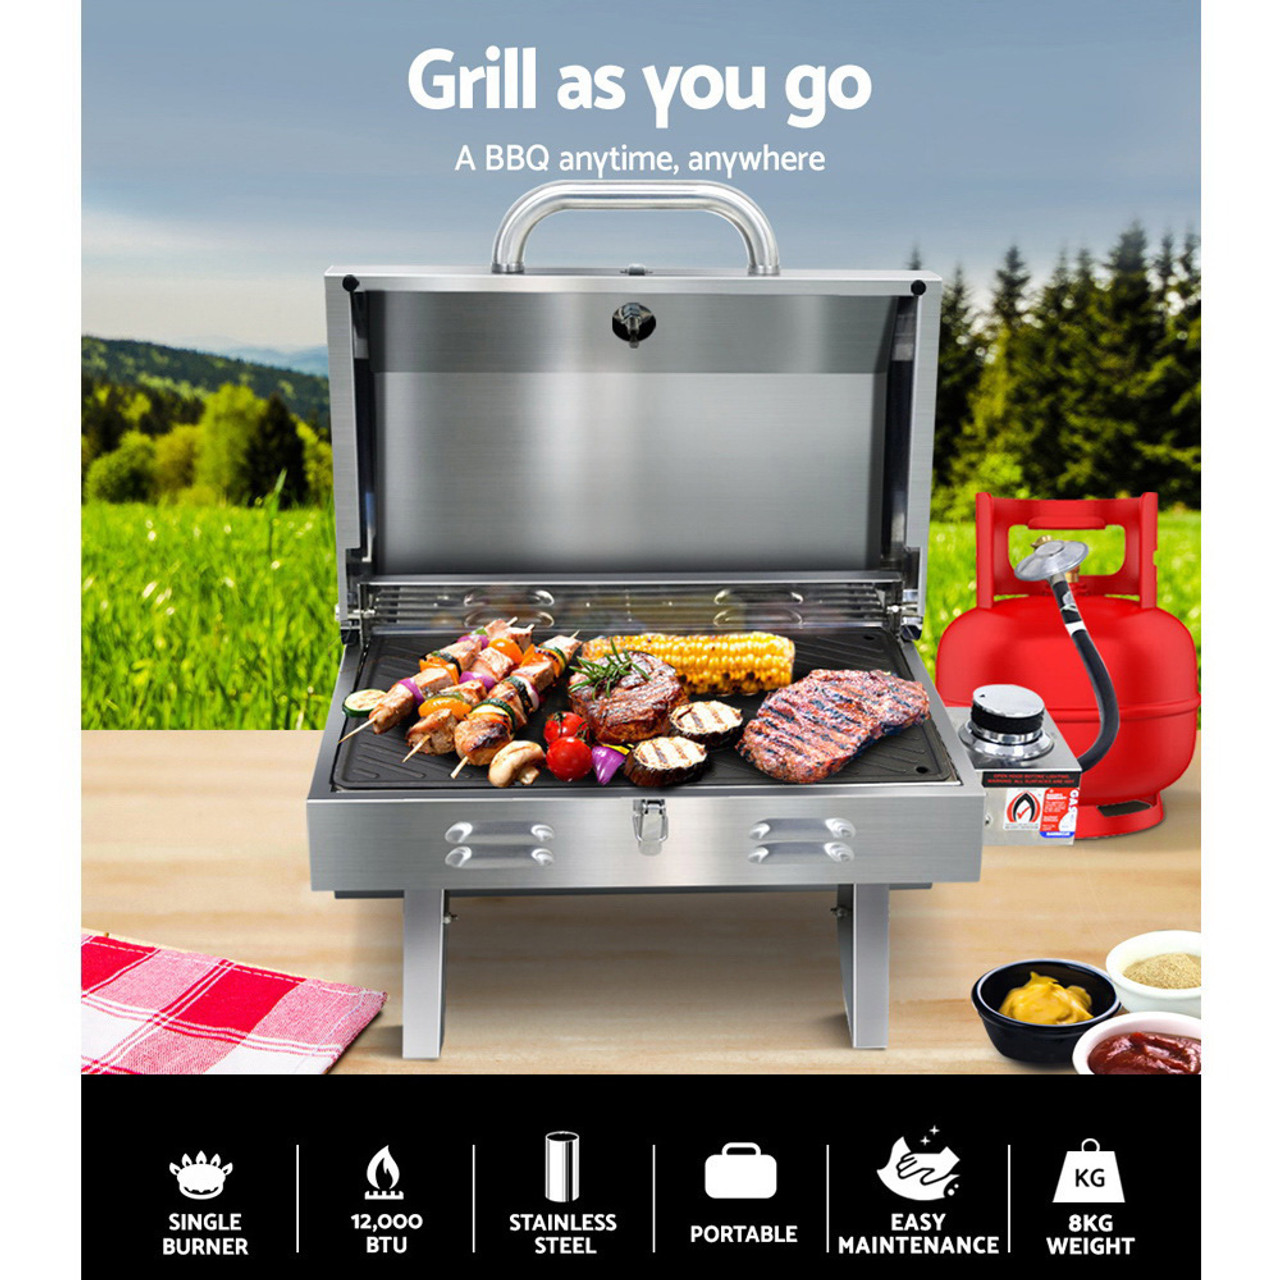 Grillz Portable Gas BBQ LPG Oven Camping Cooker Grill 1 Burner Stove Includes Grill Plate and Flat Plate Outdoor Camper Rv Caravan